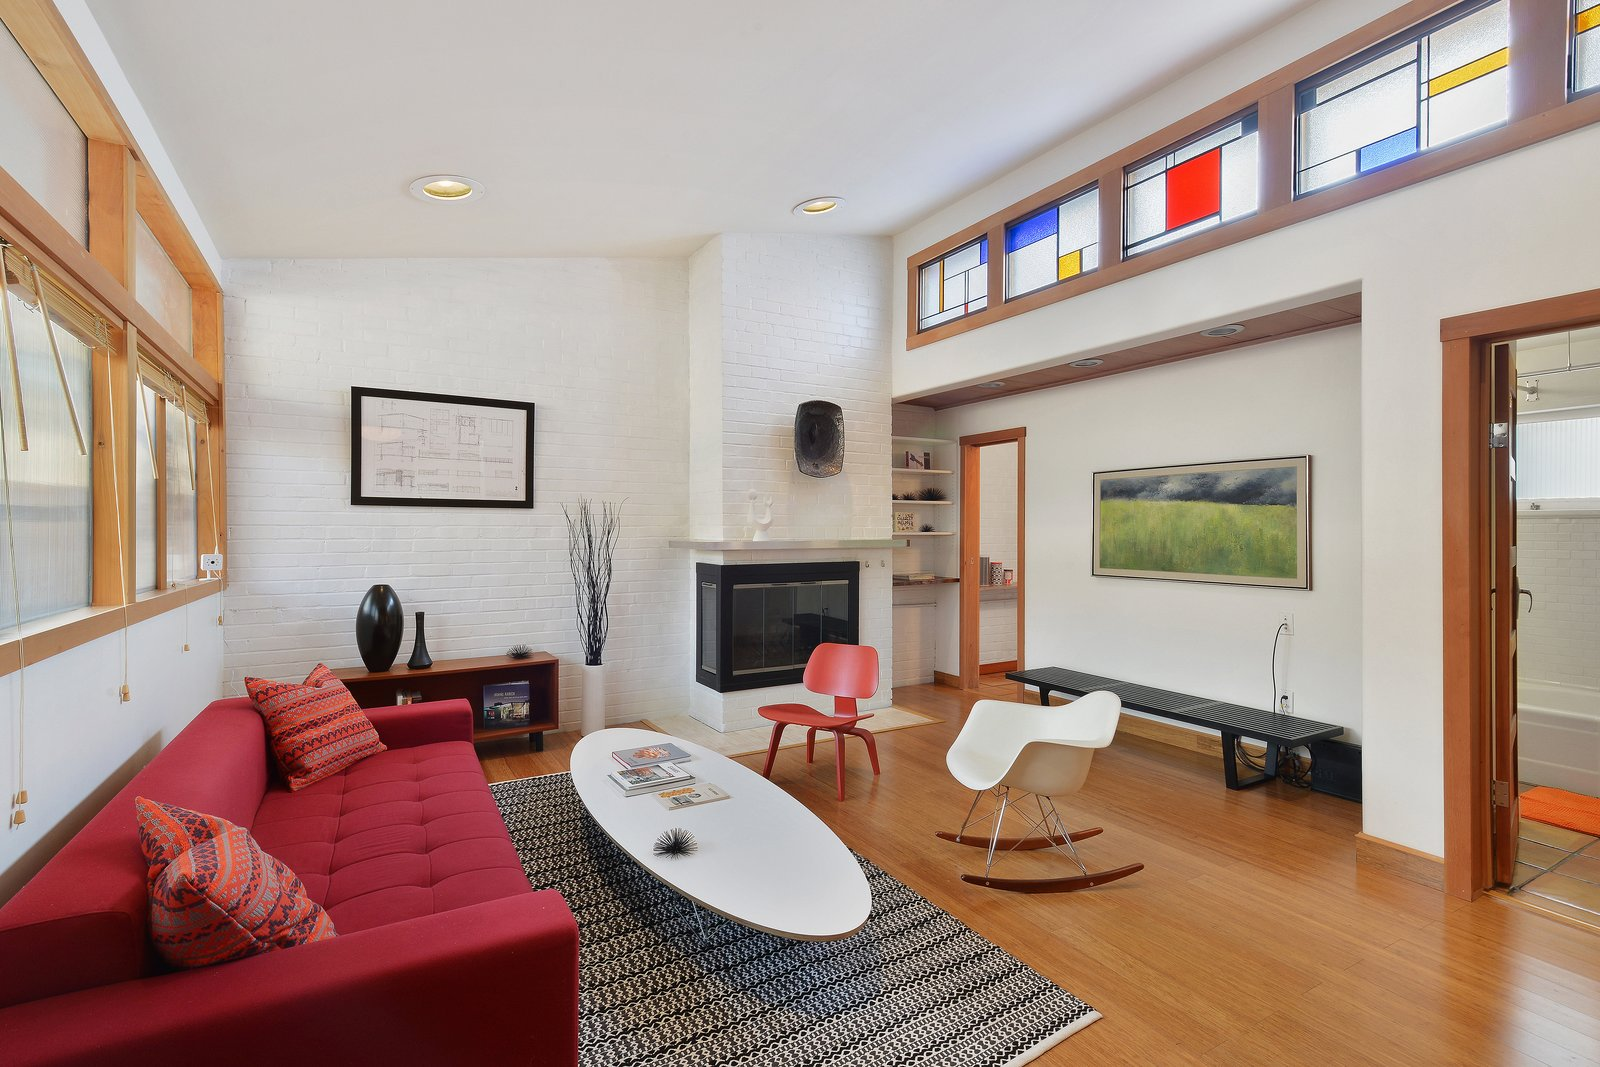 A white brick wall provides visual and material contrast to warm wood elements throughout the home.  Photo 2 of 12 in Artists Need Apply: This Midcentury Home Comes With an All-Purpose Workshop for $949K